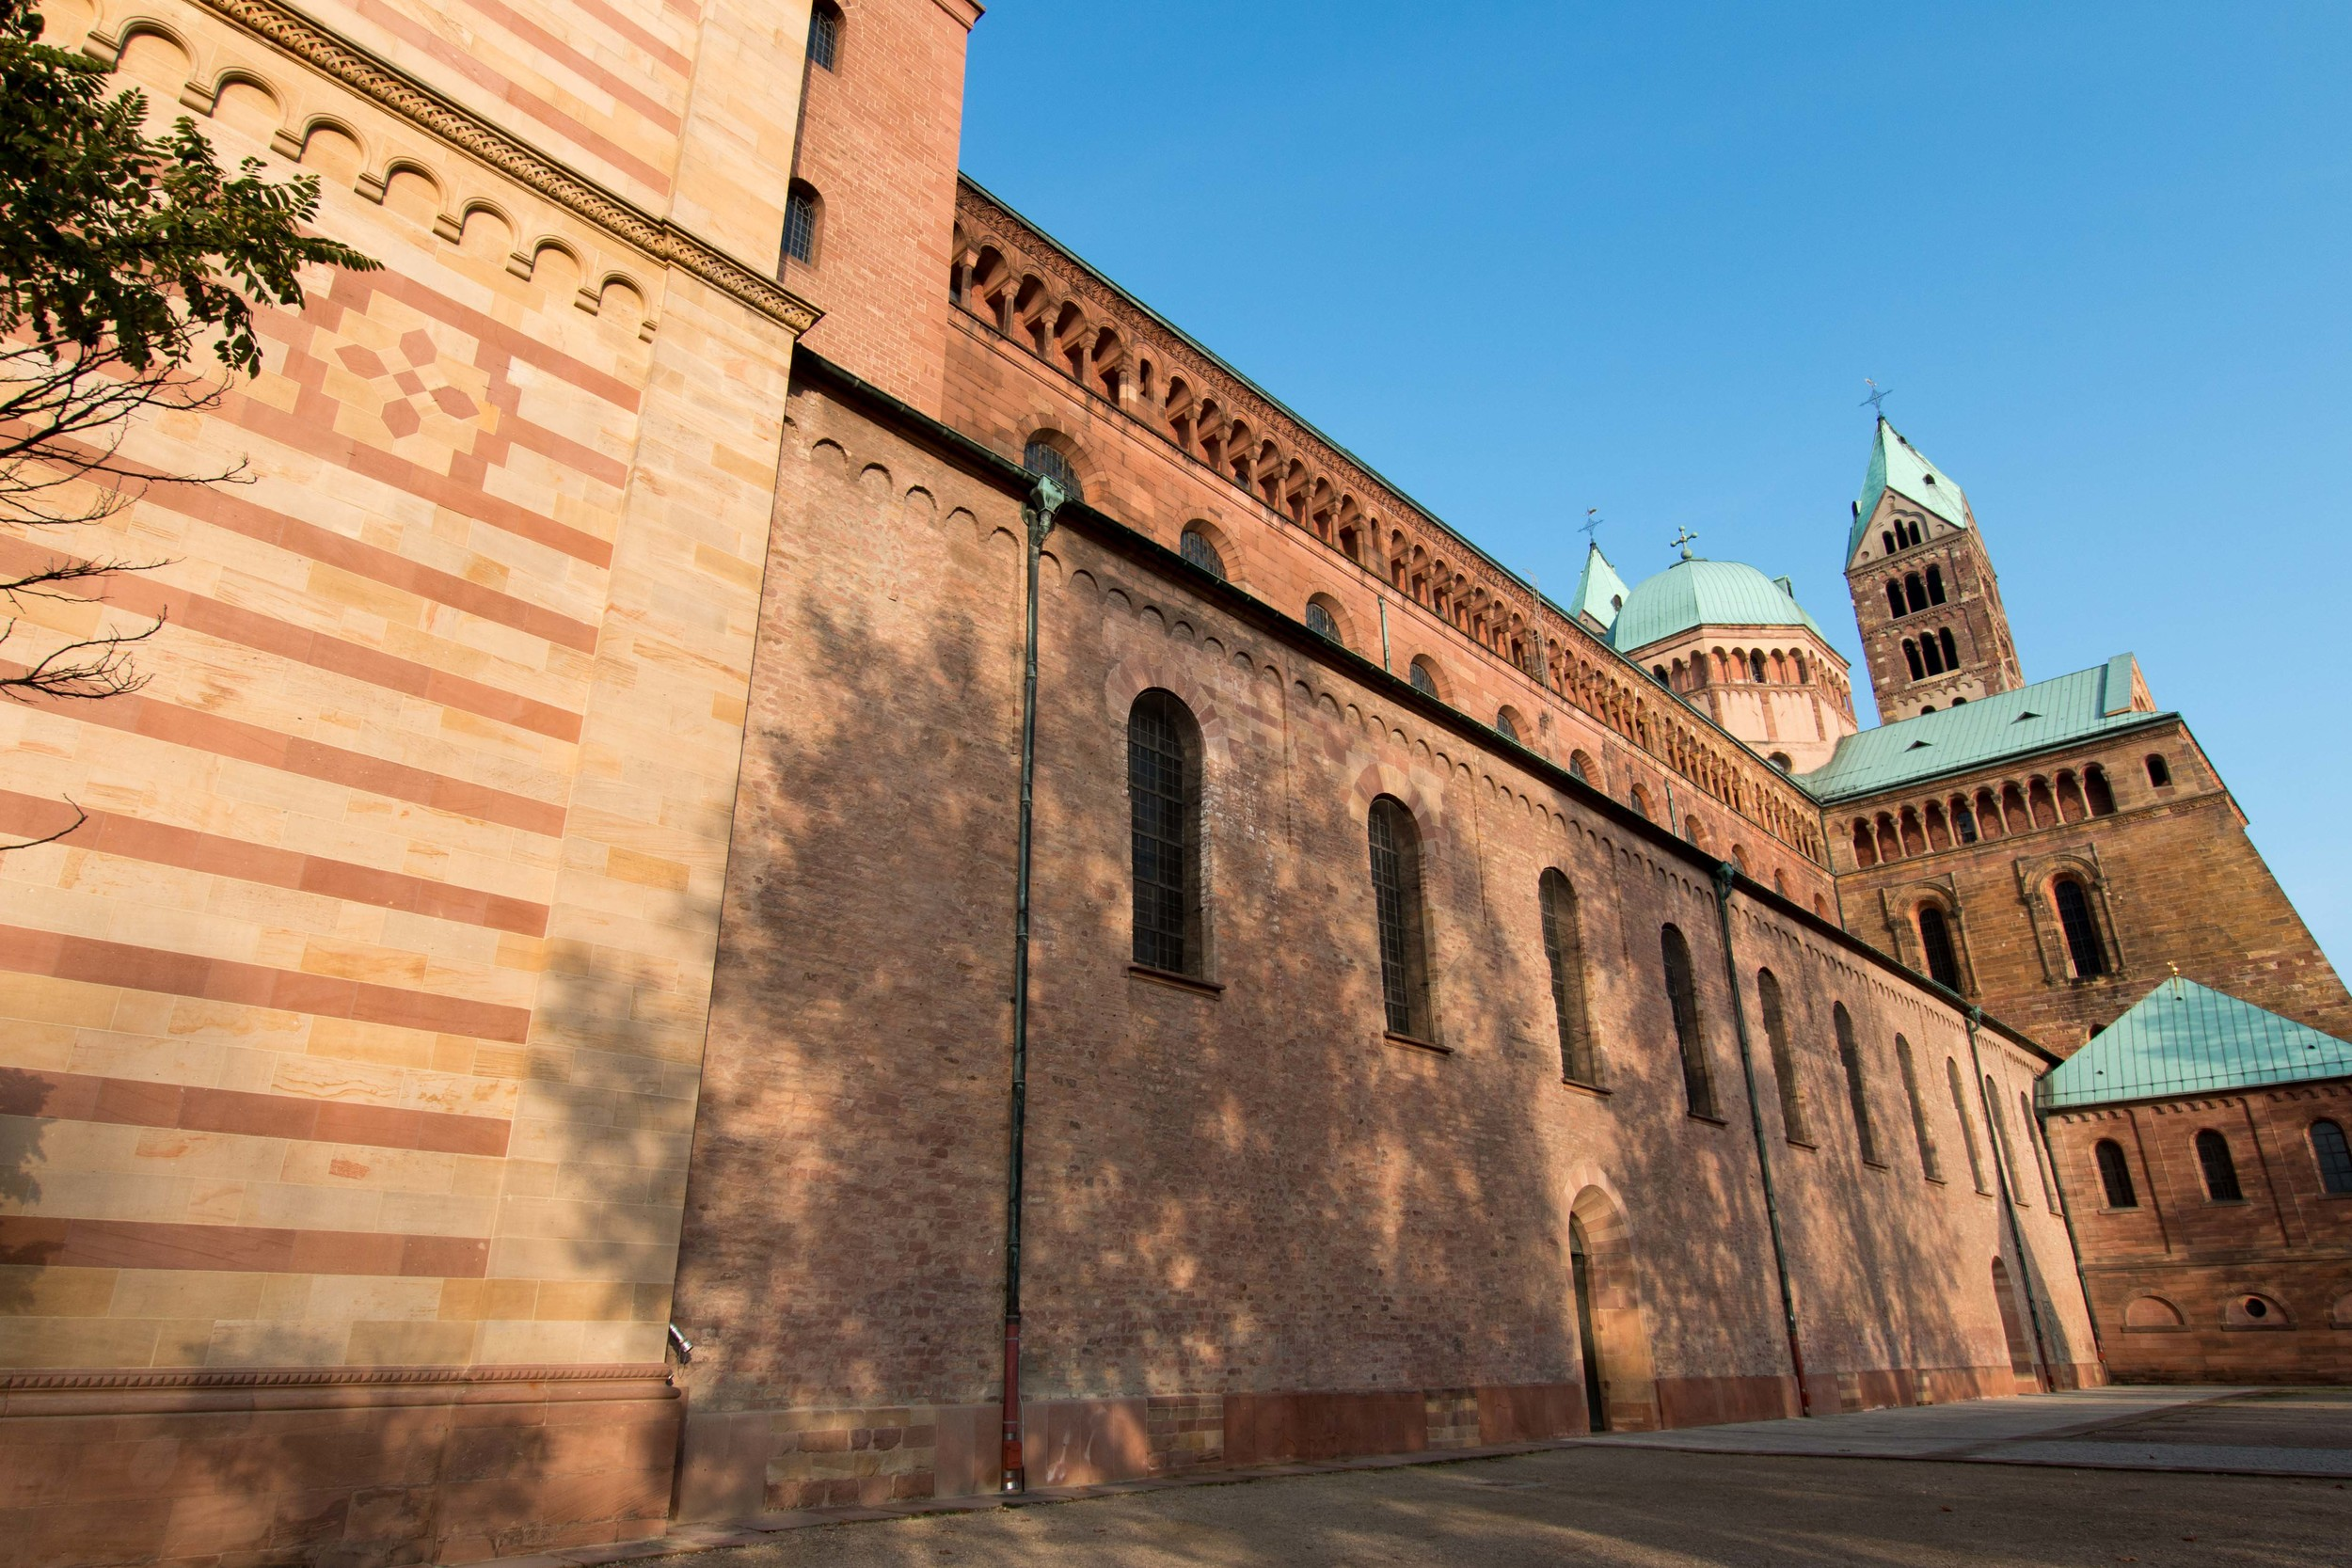 The right side of the Speyer Cathedral. The bottom row of windows dates from the 11th century. The upper widows are from the restoration in the 18th century and the front of the building (striped portion), is from the 19th century.